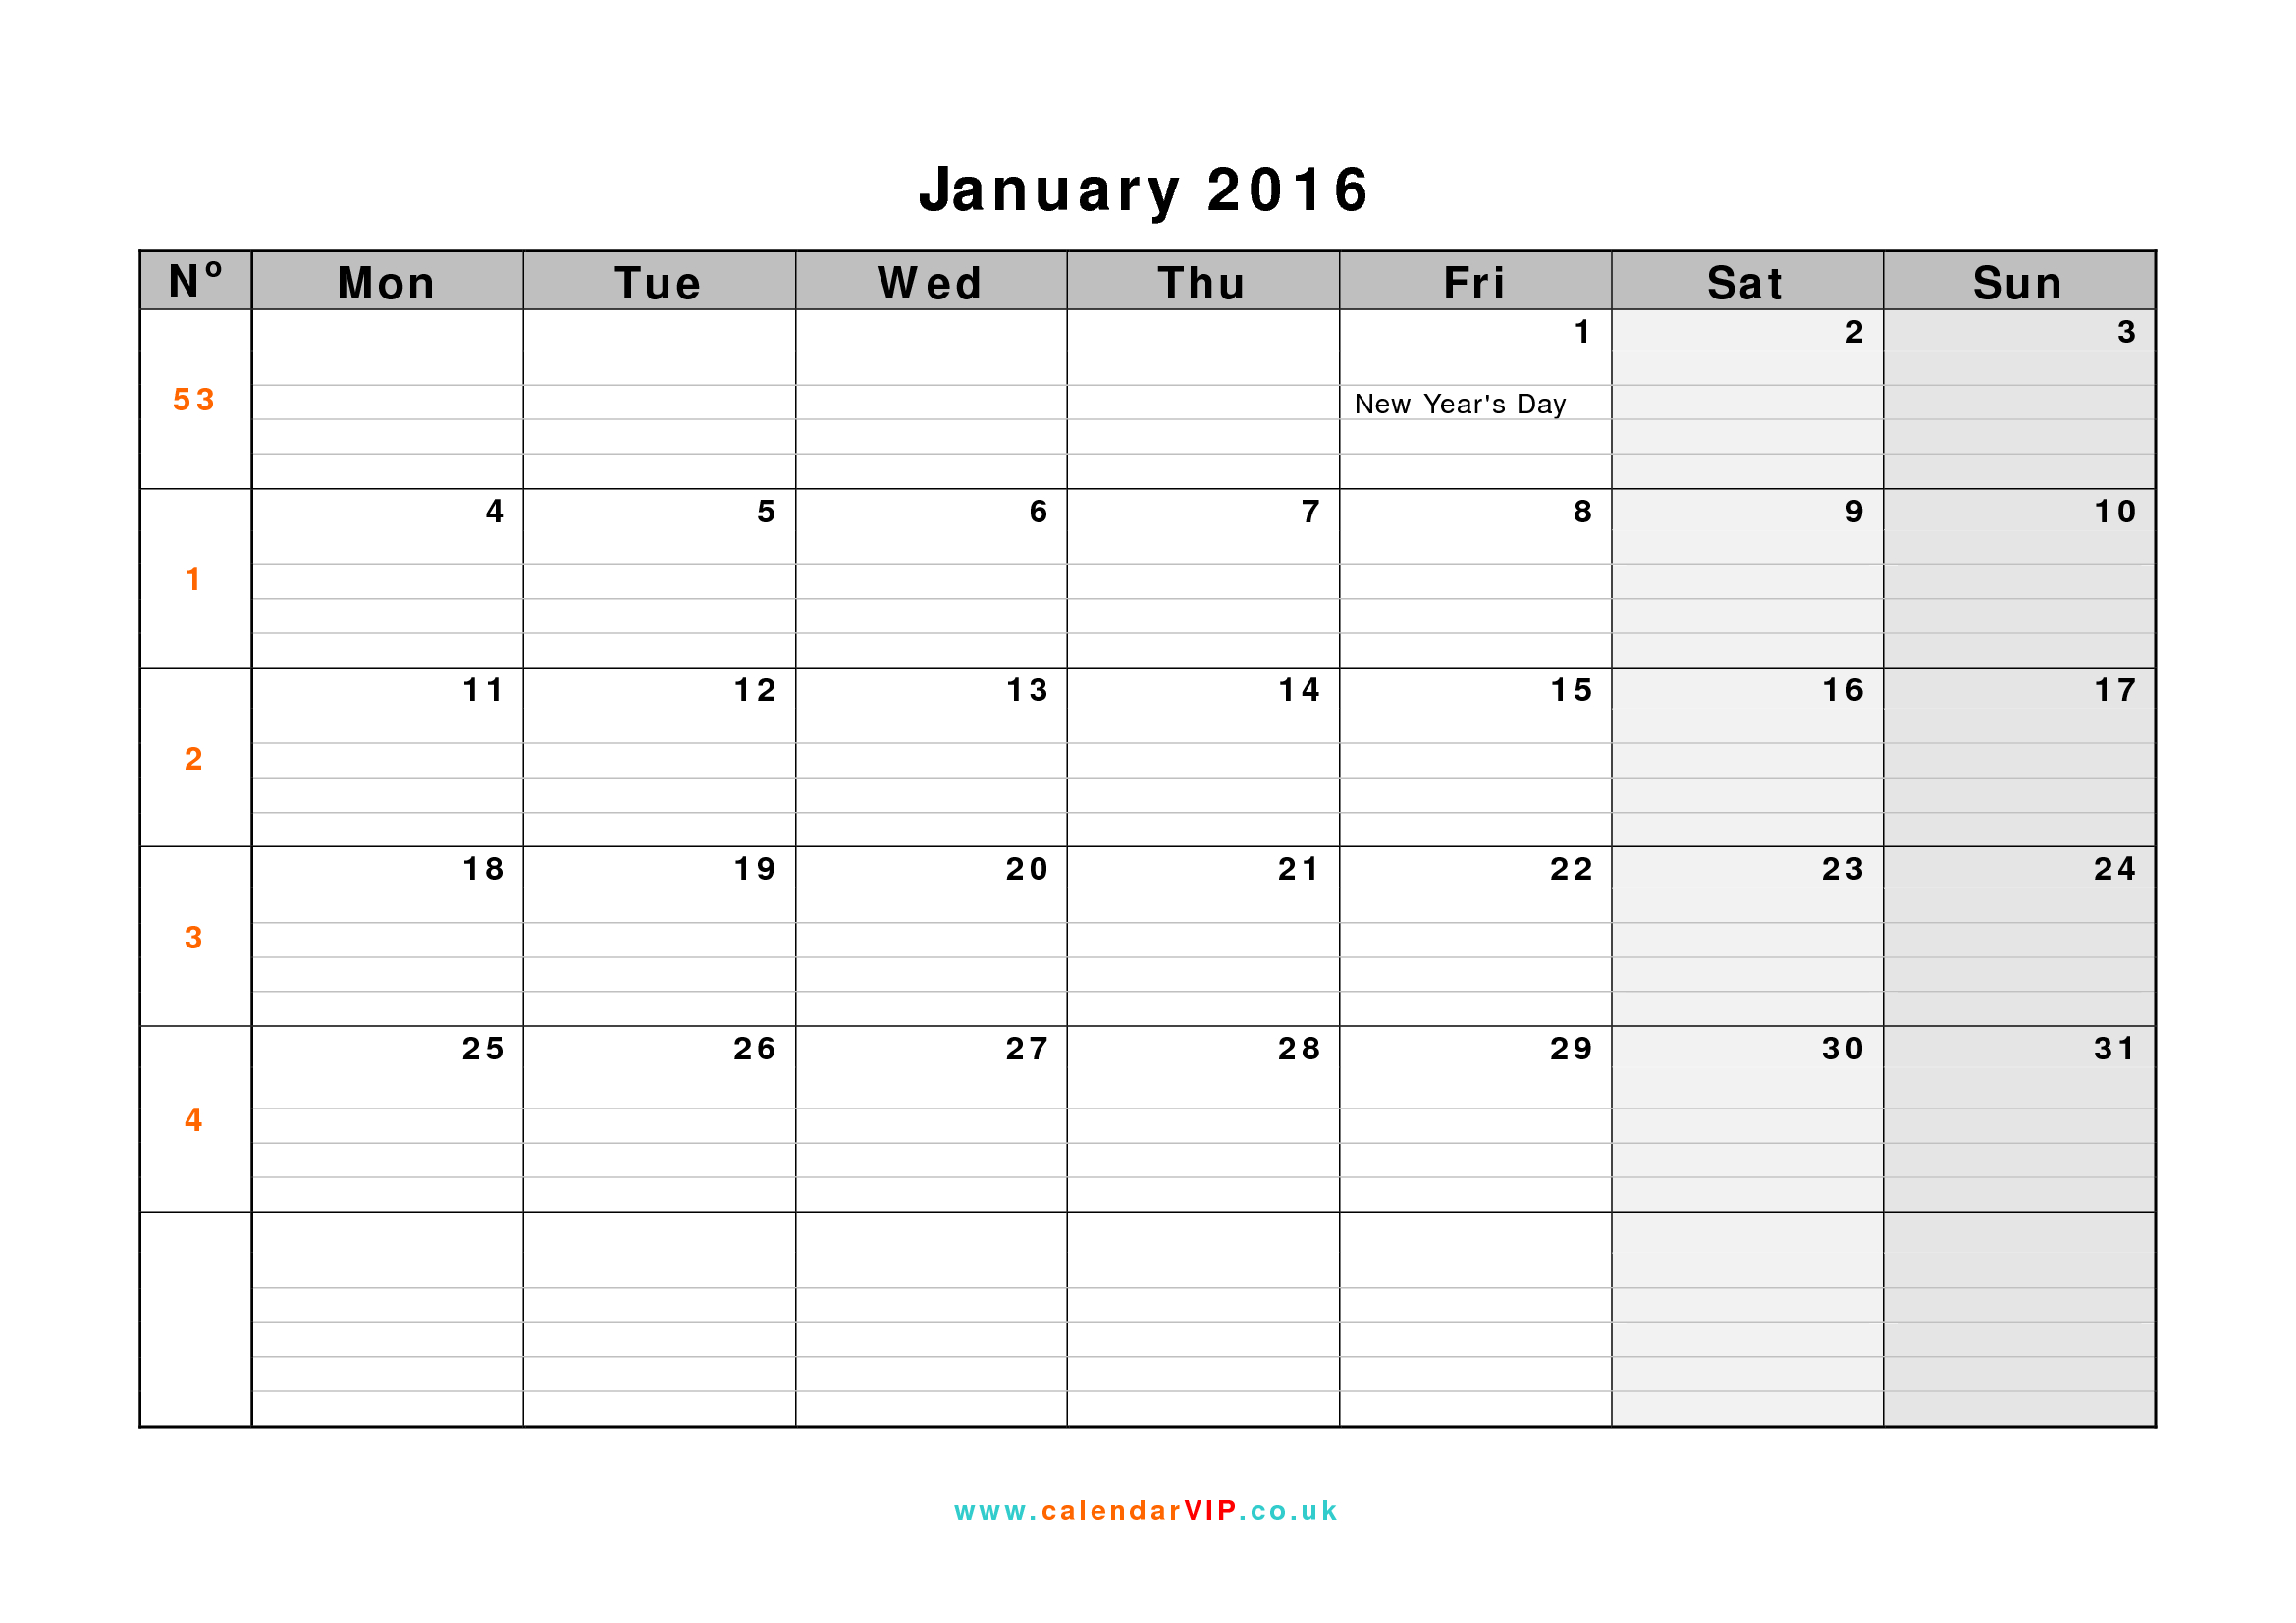 2016 january calendar clipart svg freeuse library 2016 January Calendar Clipart - Clipart Kid svg freeuse library